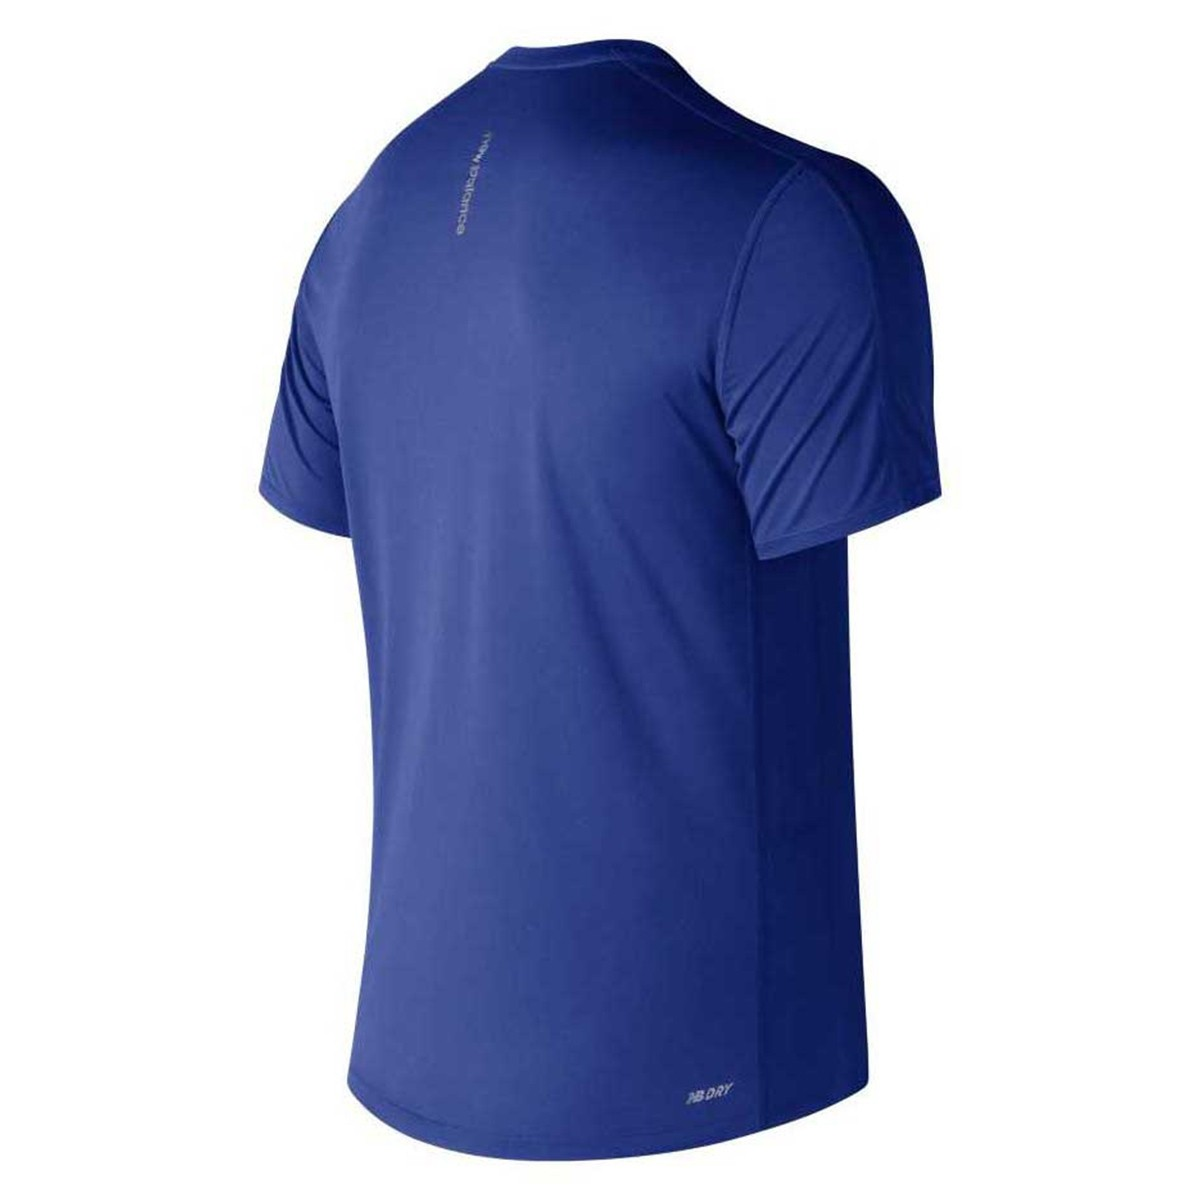 Camiseta New Balance Accellerate S/S - Azul - Masculino